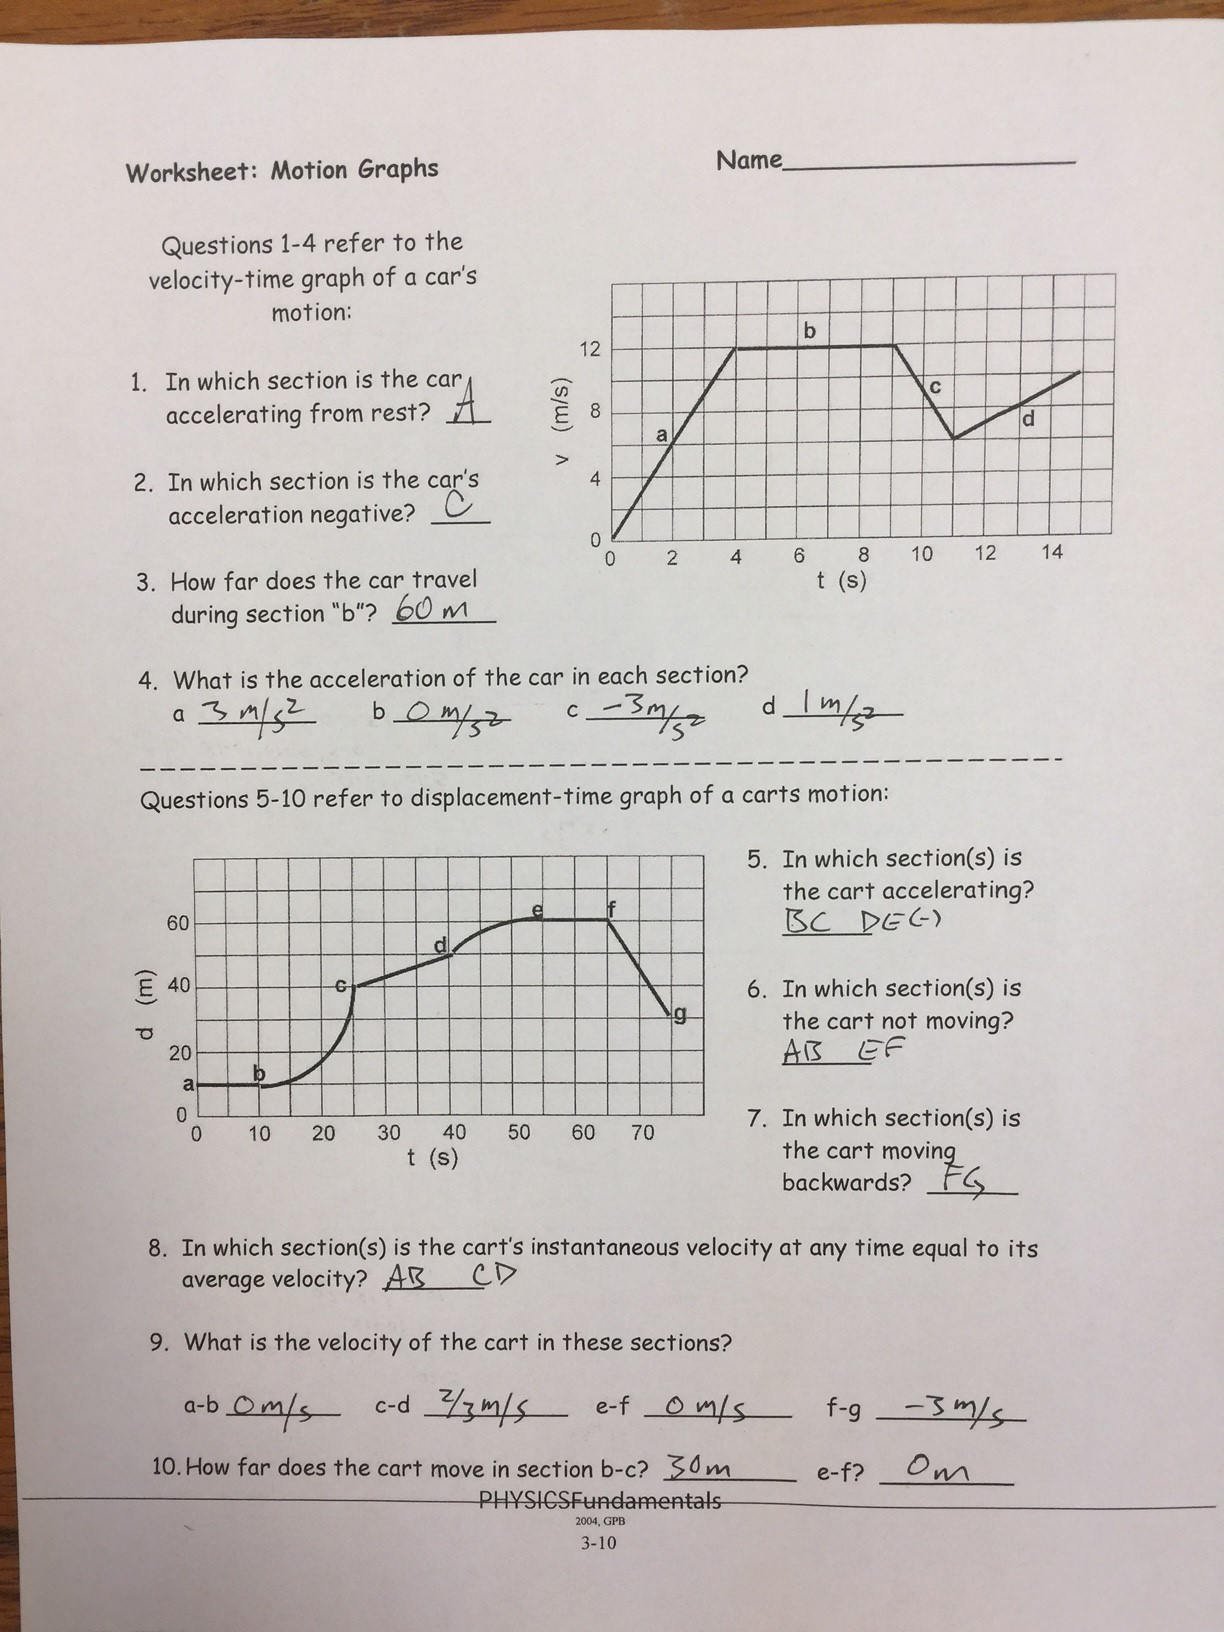 Motion Graphs Worksheet Answers Physics – Unit 2a Linear Motion Answer Keys